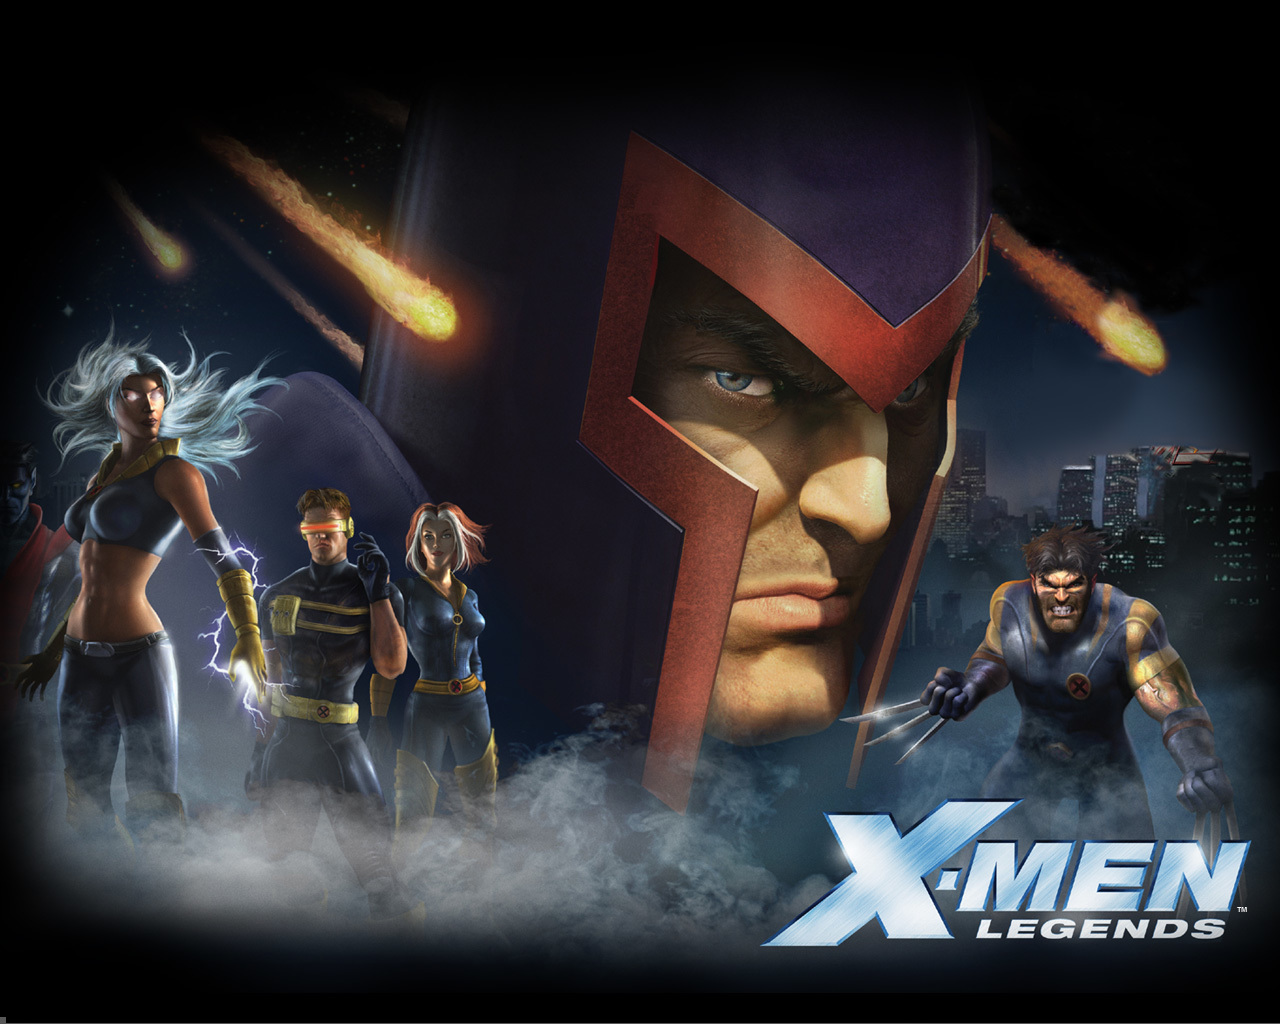 X-Men Legends video Games HD Wallpaper